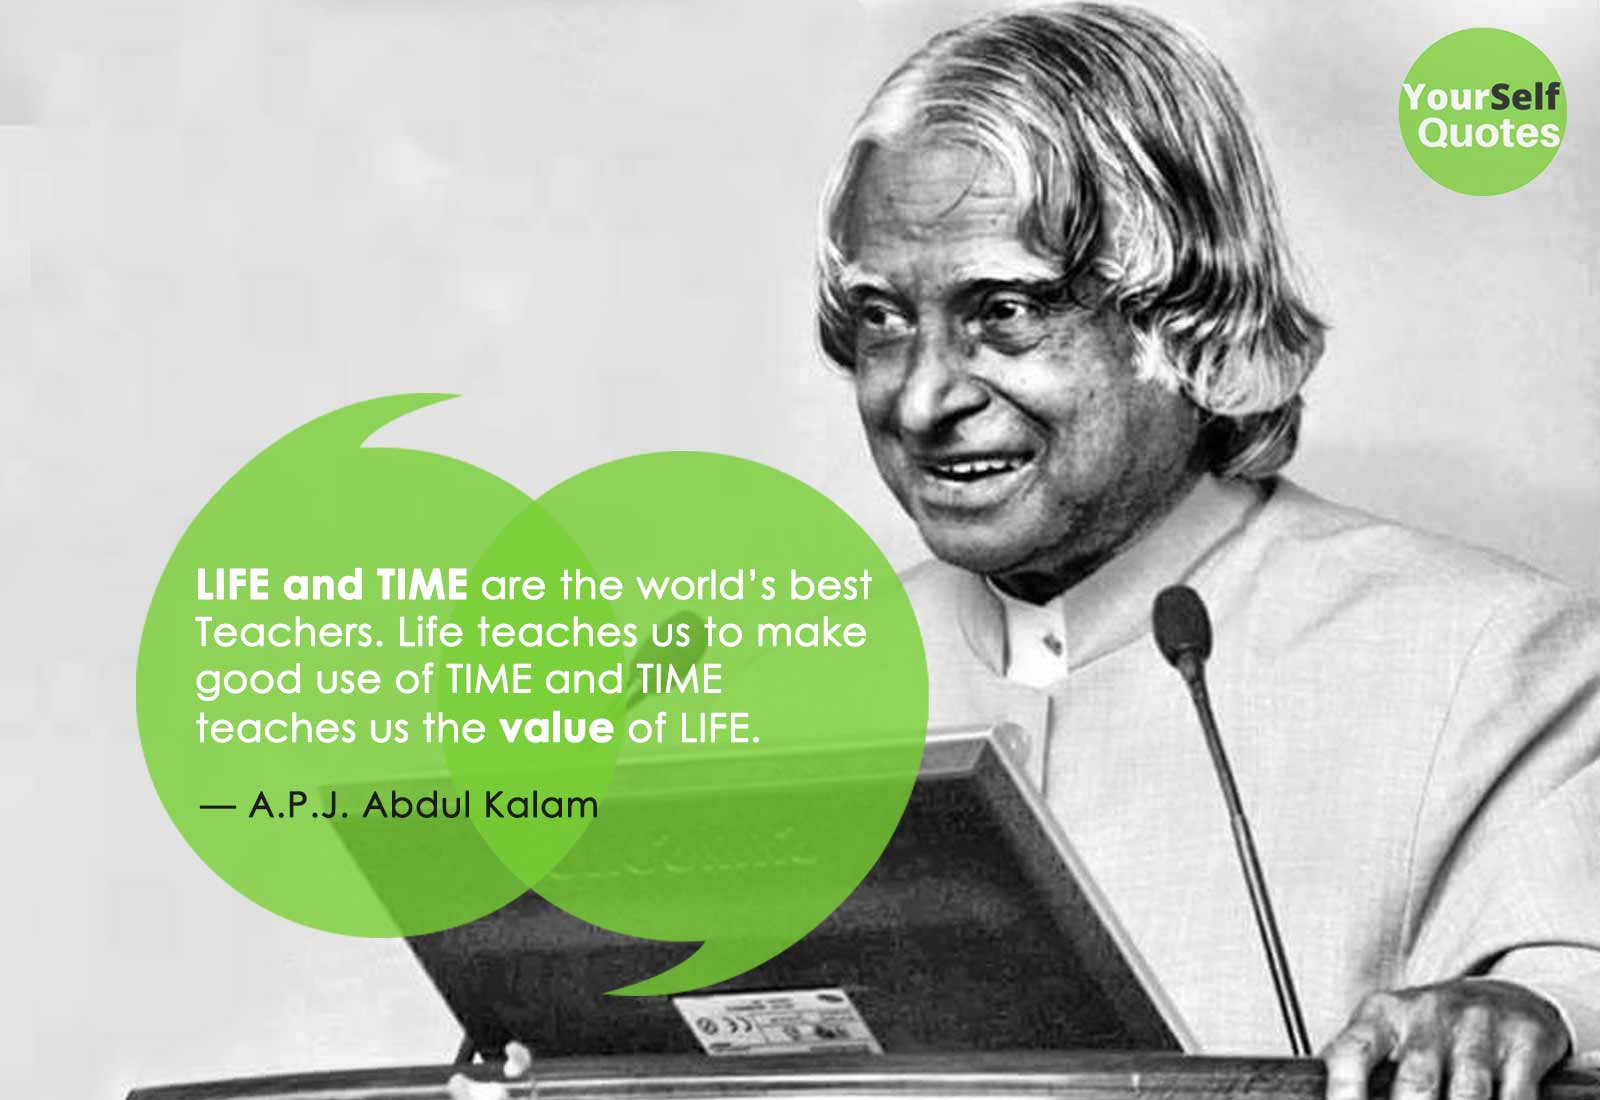 Abdul Kalam Quotes on Life